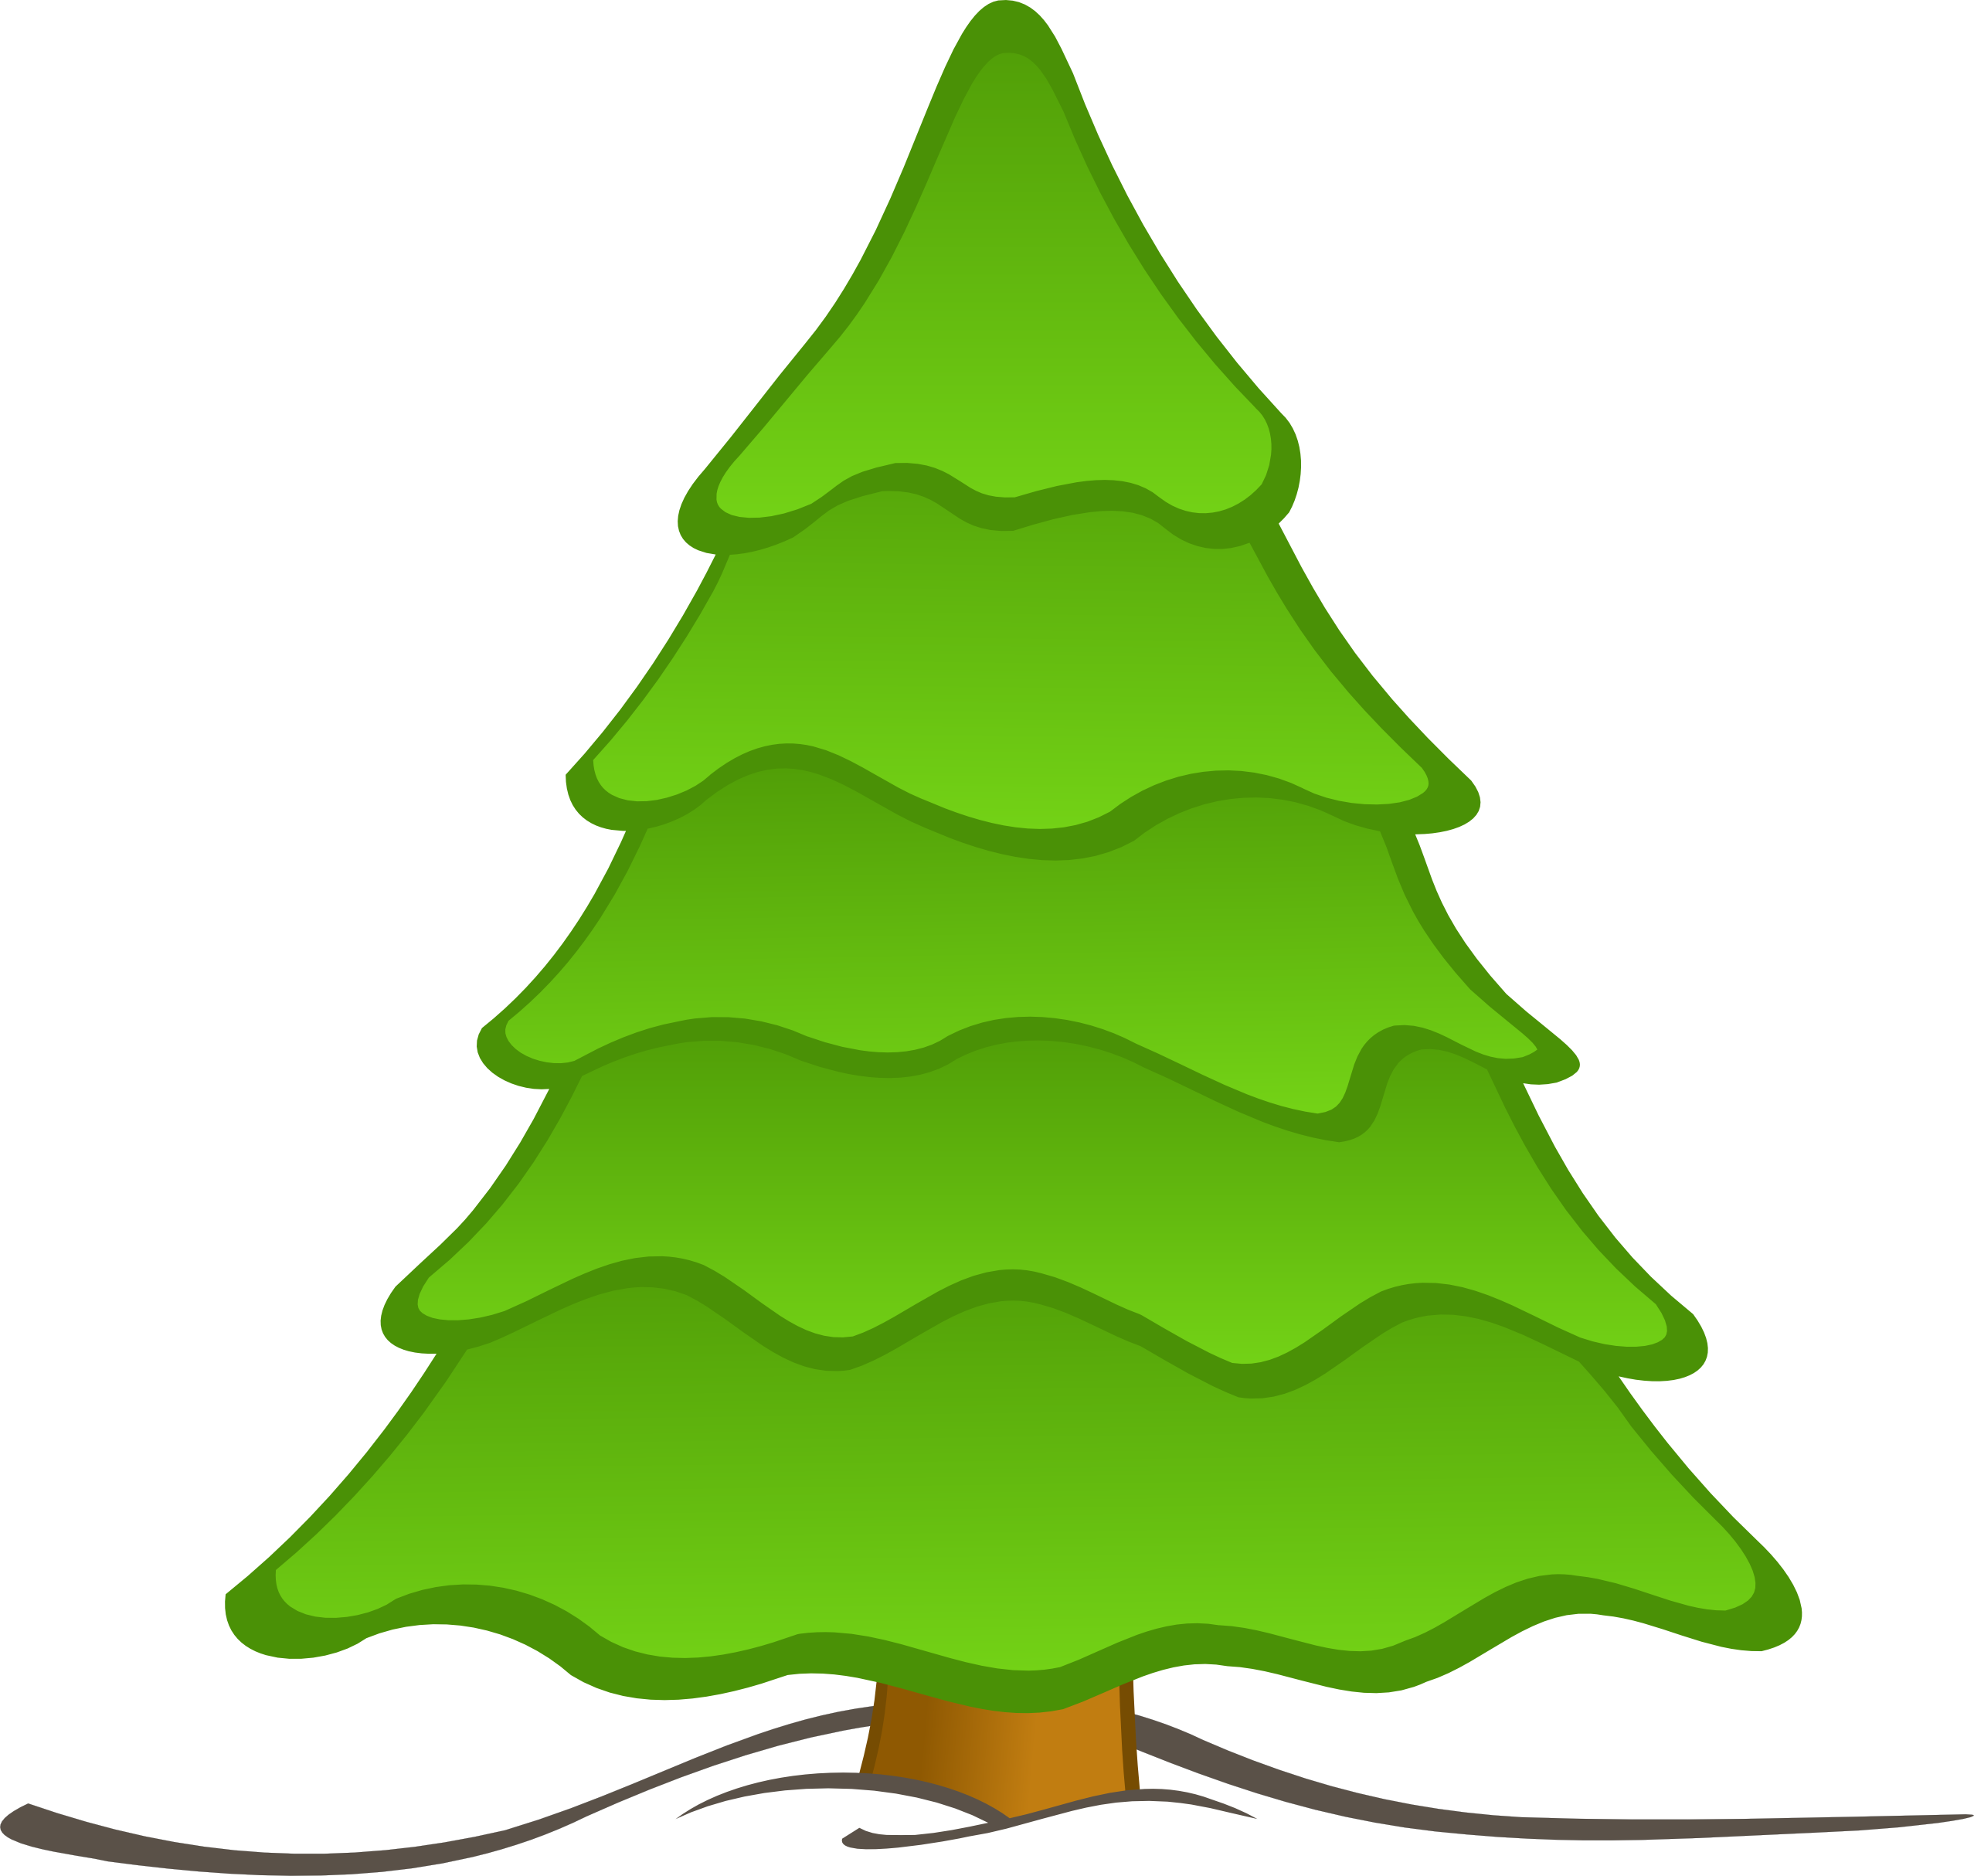 Clipart mustache tree.  collection of plain